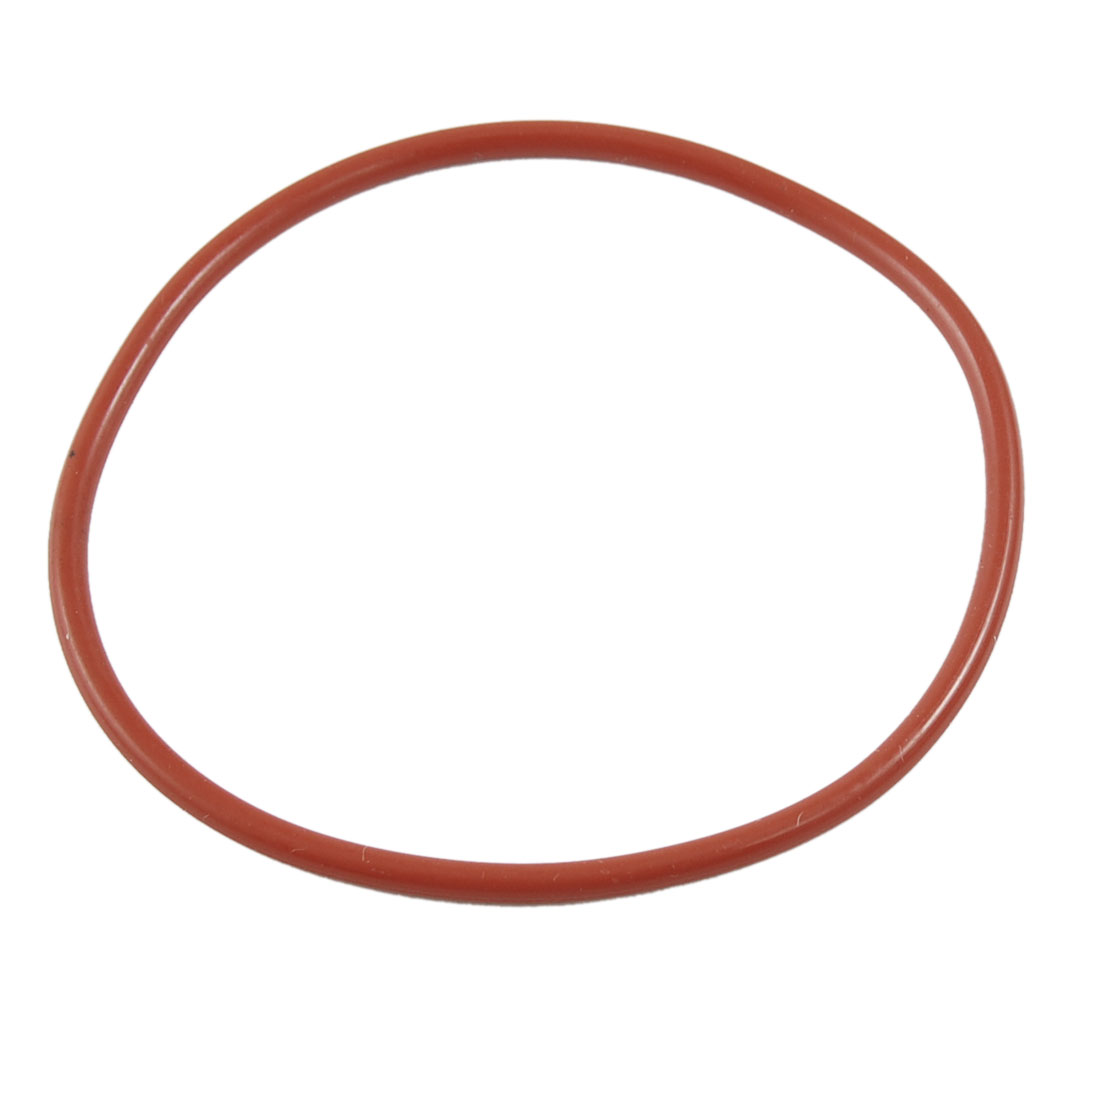 Red Silicone O Ring Oil Seal Gasket Washer Metric 75mm x 3mm